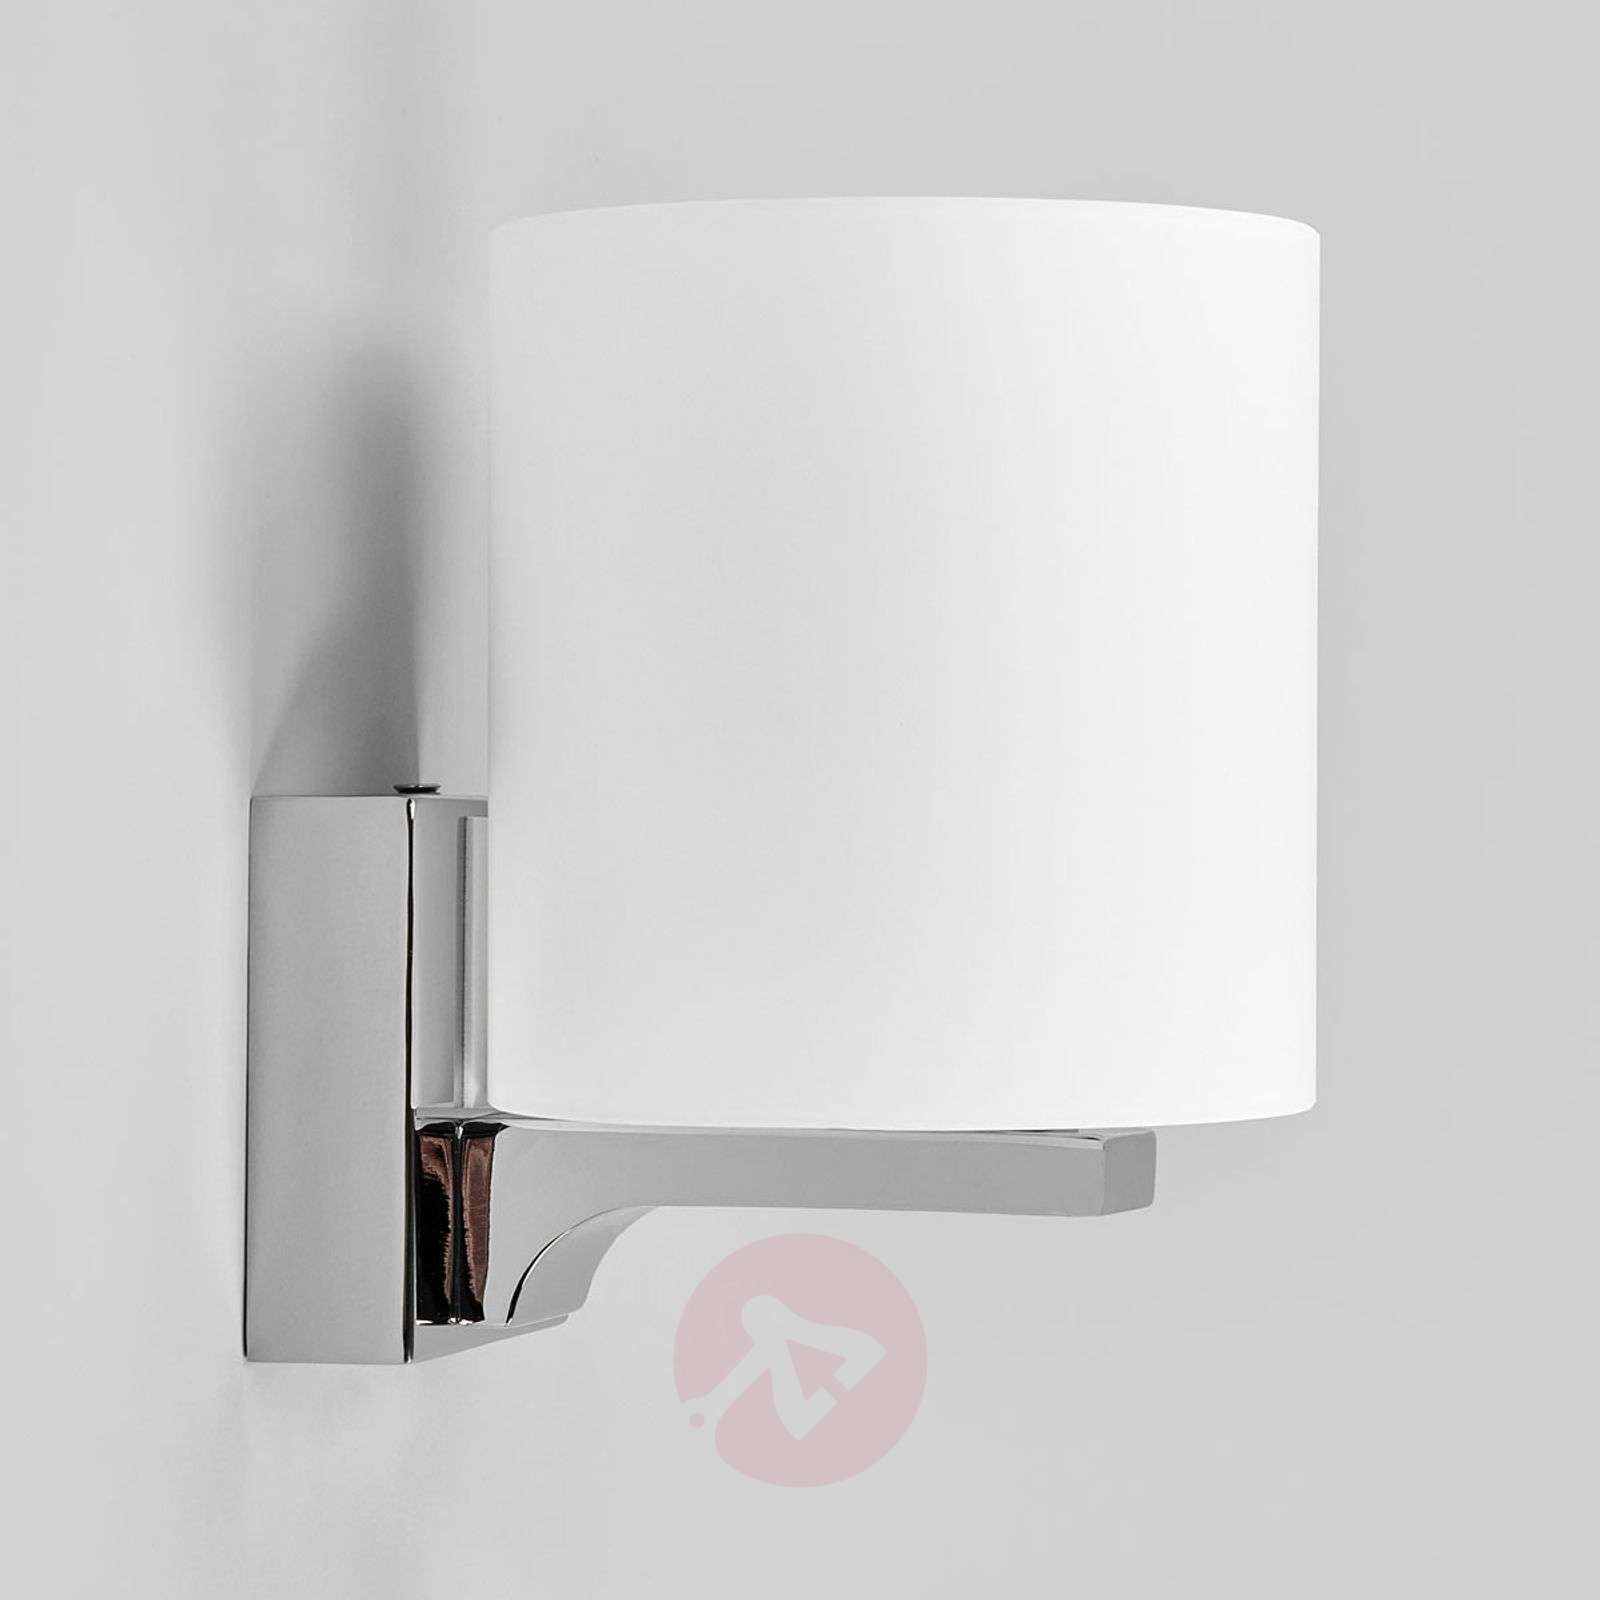 bathroom brushed wall light sconces candle decor nickel of polished afterpartyclub bath size silver sconce full bar holders decorative